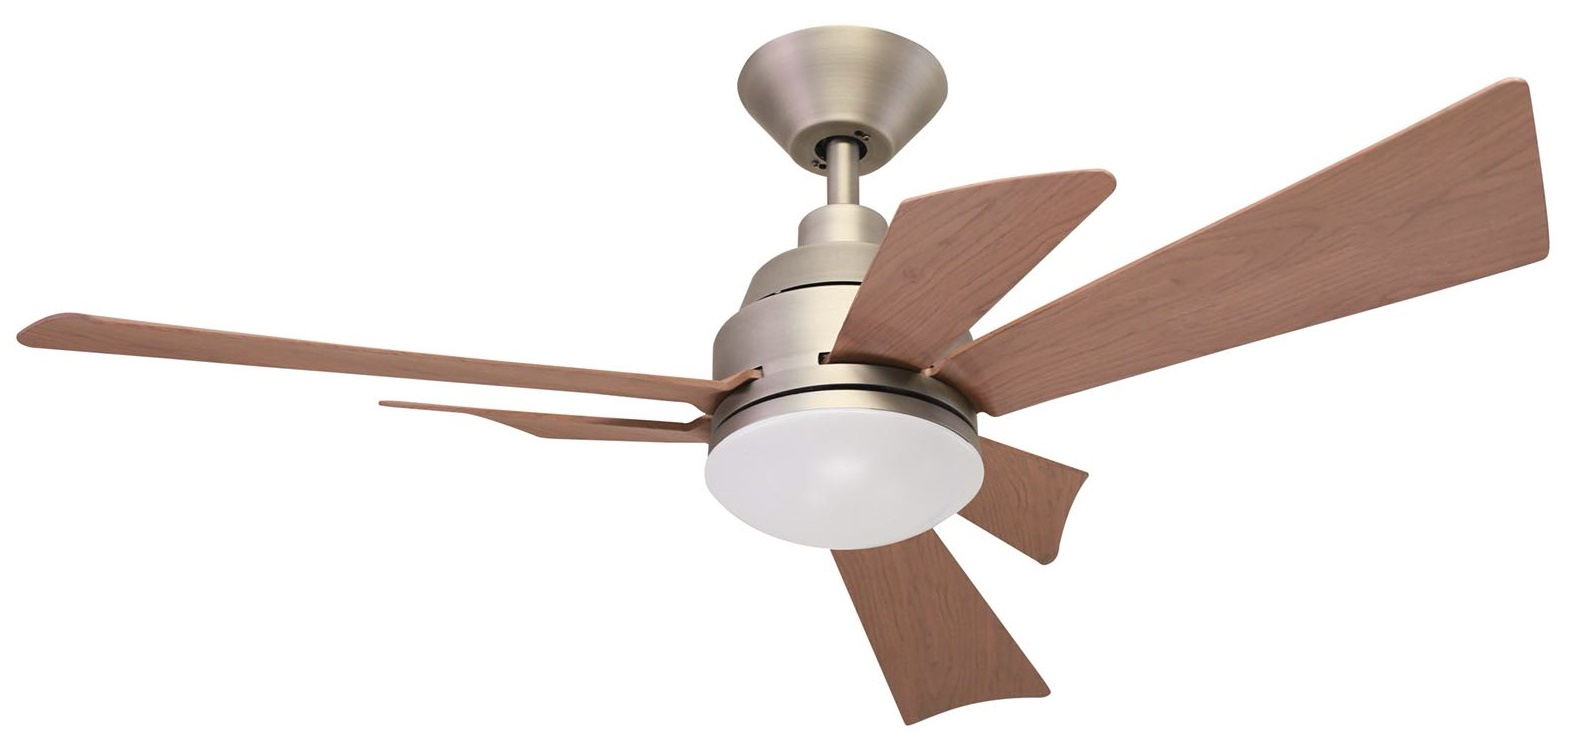 fan lighting ideas fans insight home unusual light with covers for ceiling unique